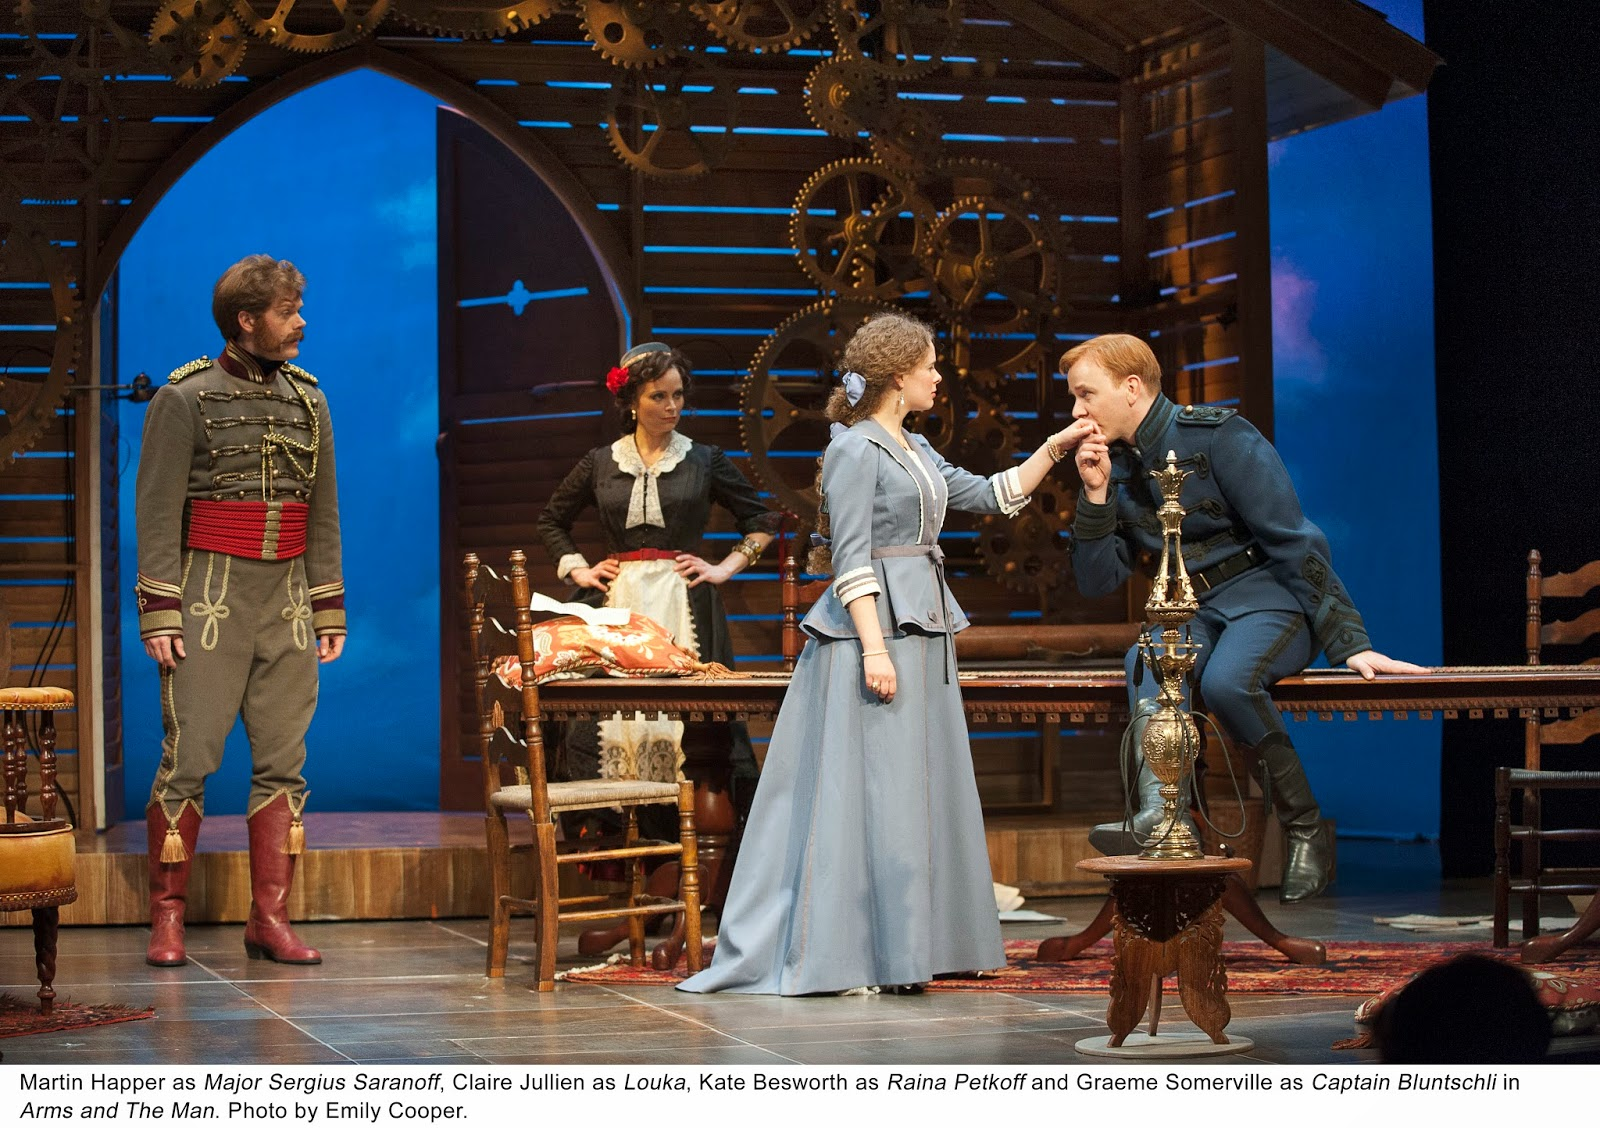 a critique of arms and the man a play Essays and criticism on george bernard shaw's arms and the man - critical evaluation war makes men tired and hungry, afraid and nervous in the person of bluntschli and in his comments about battle, shaw establishes the opposition with the archromantics of the play, raina and sergius the satire of the play is aimed.